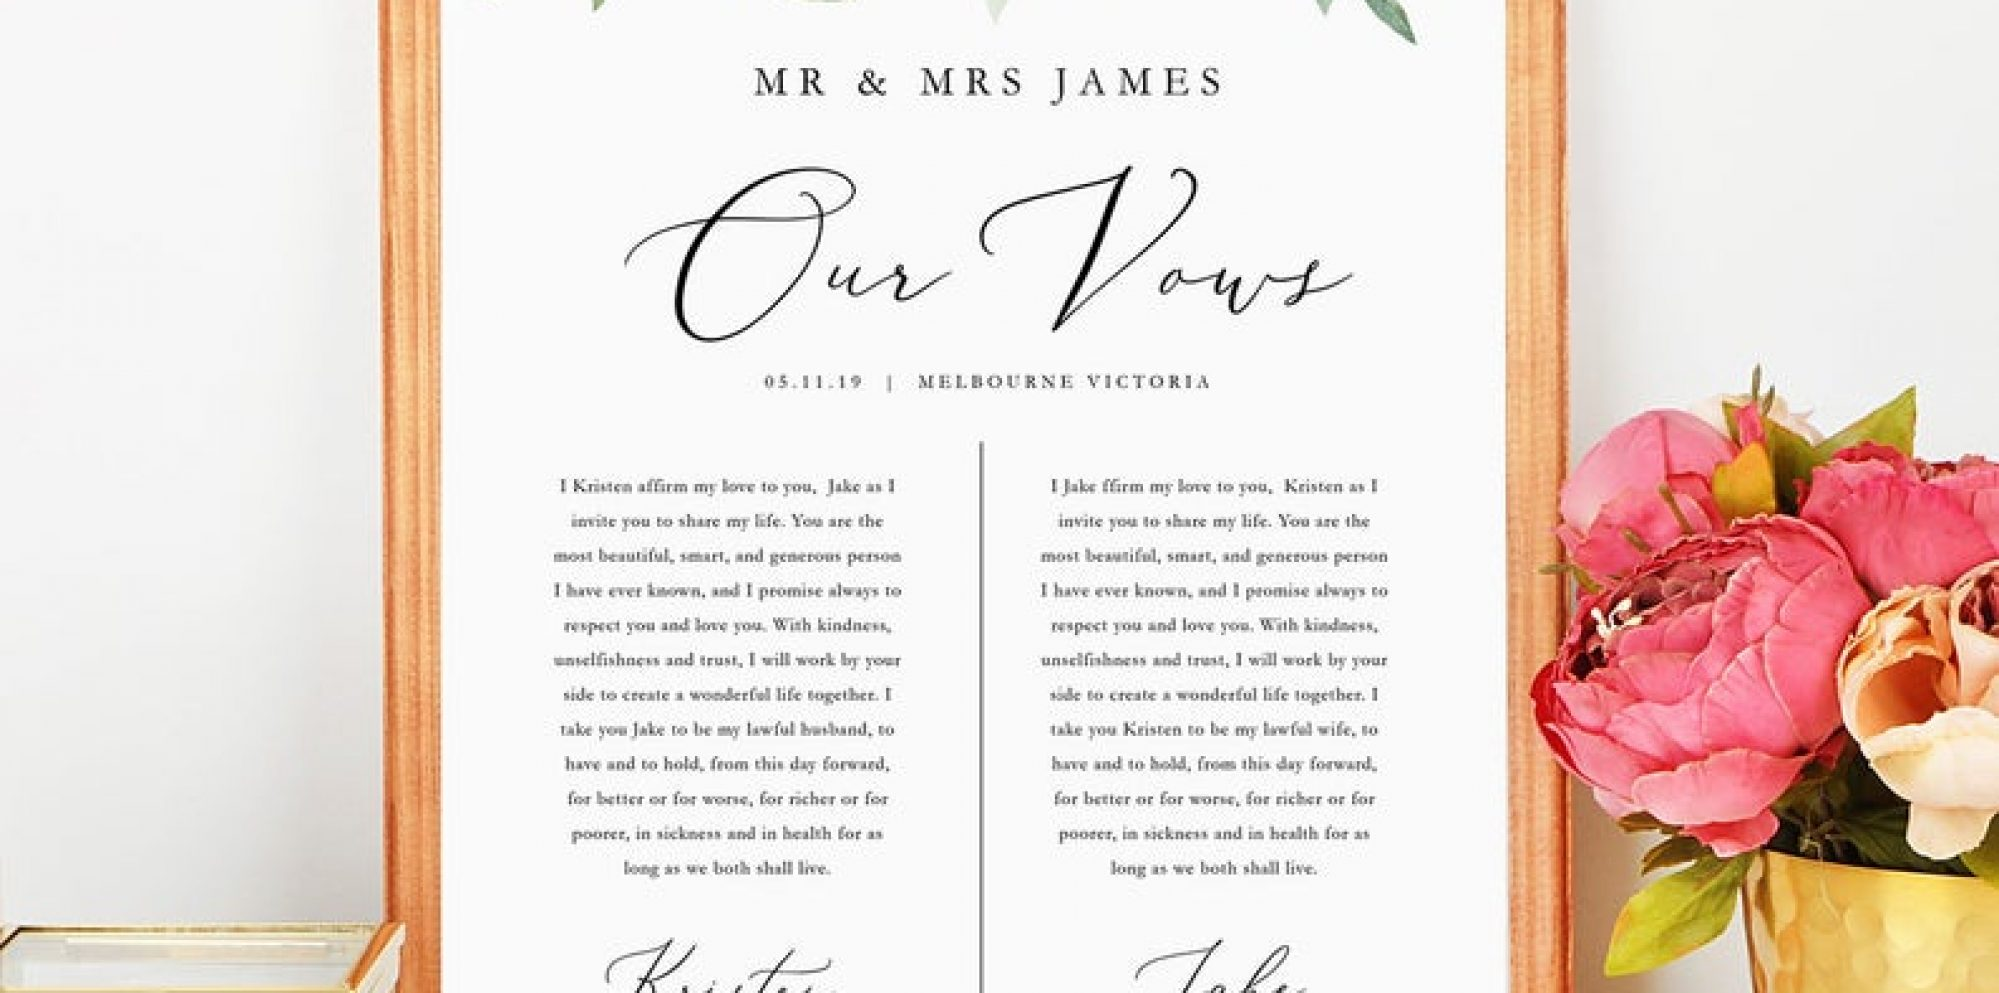 How to write your own wedding vows step by step